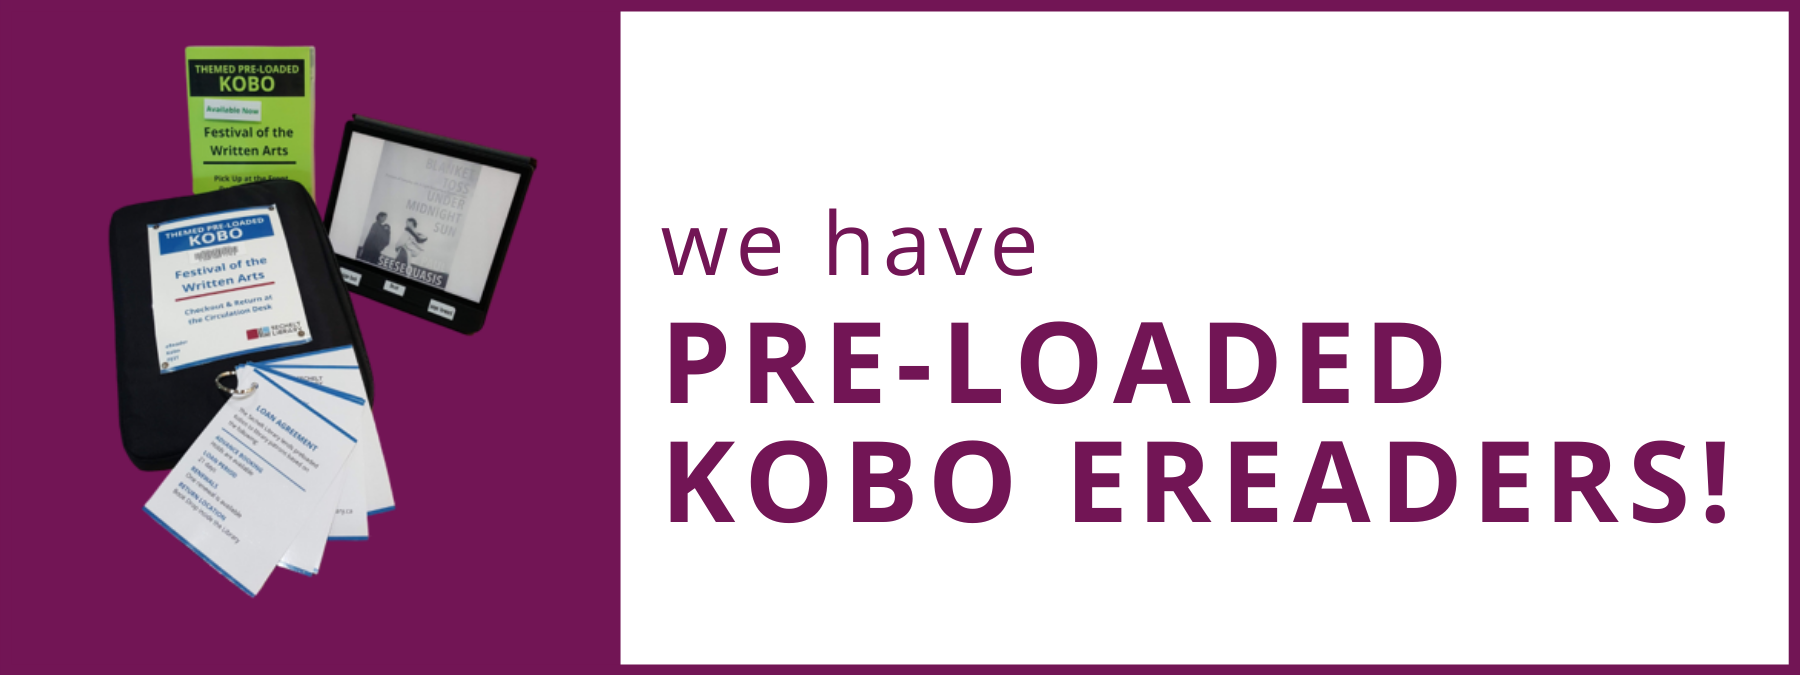 We have preloaded Kobo ereaders!